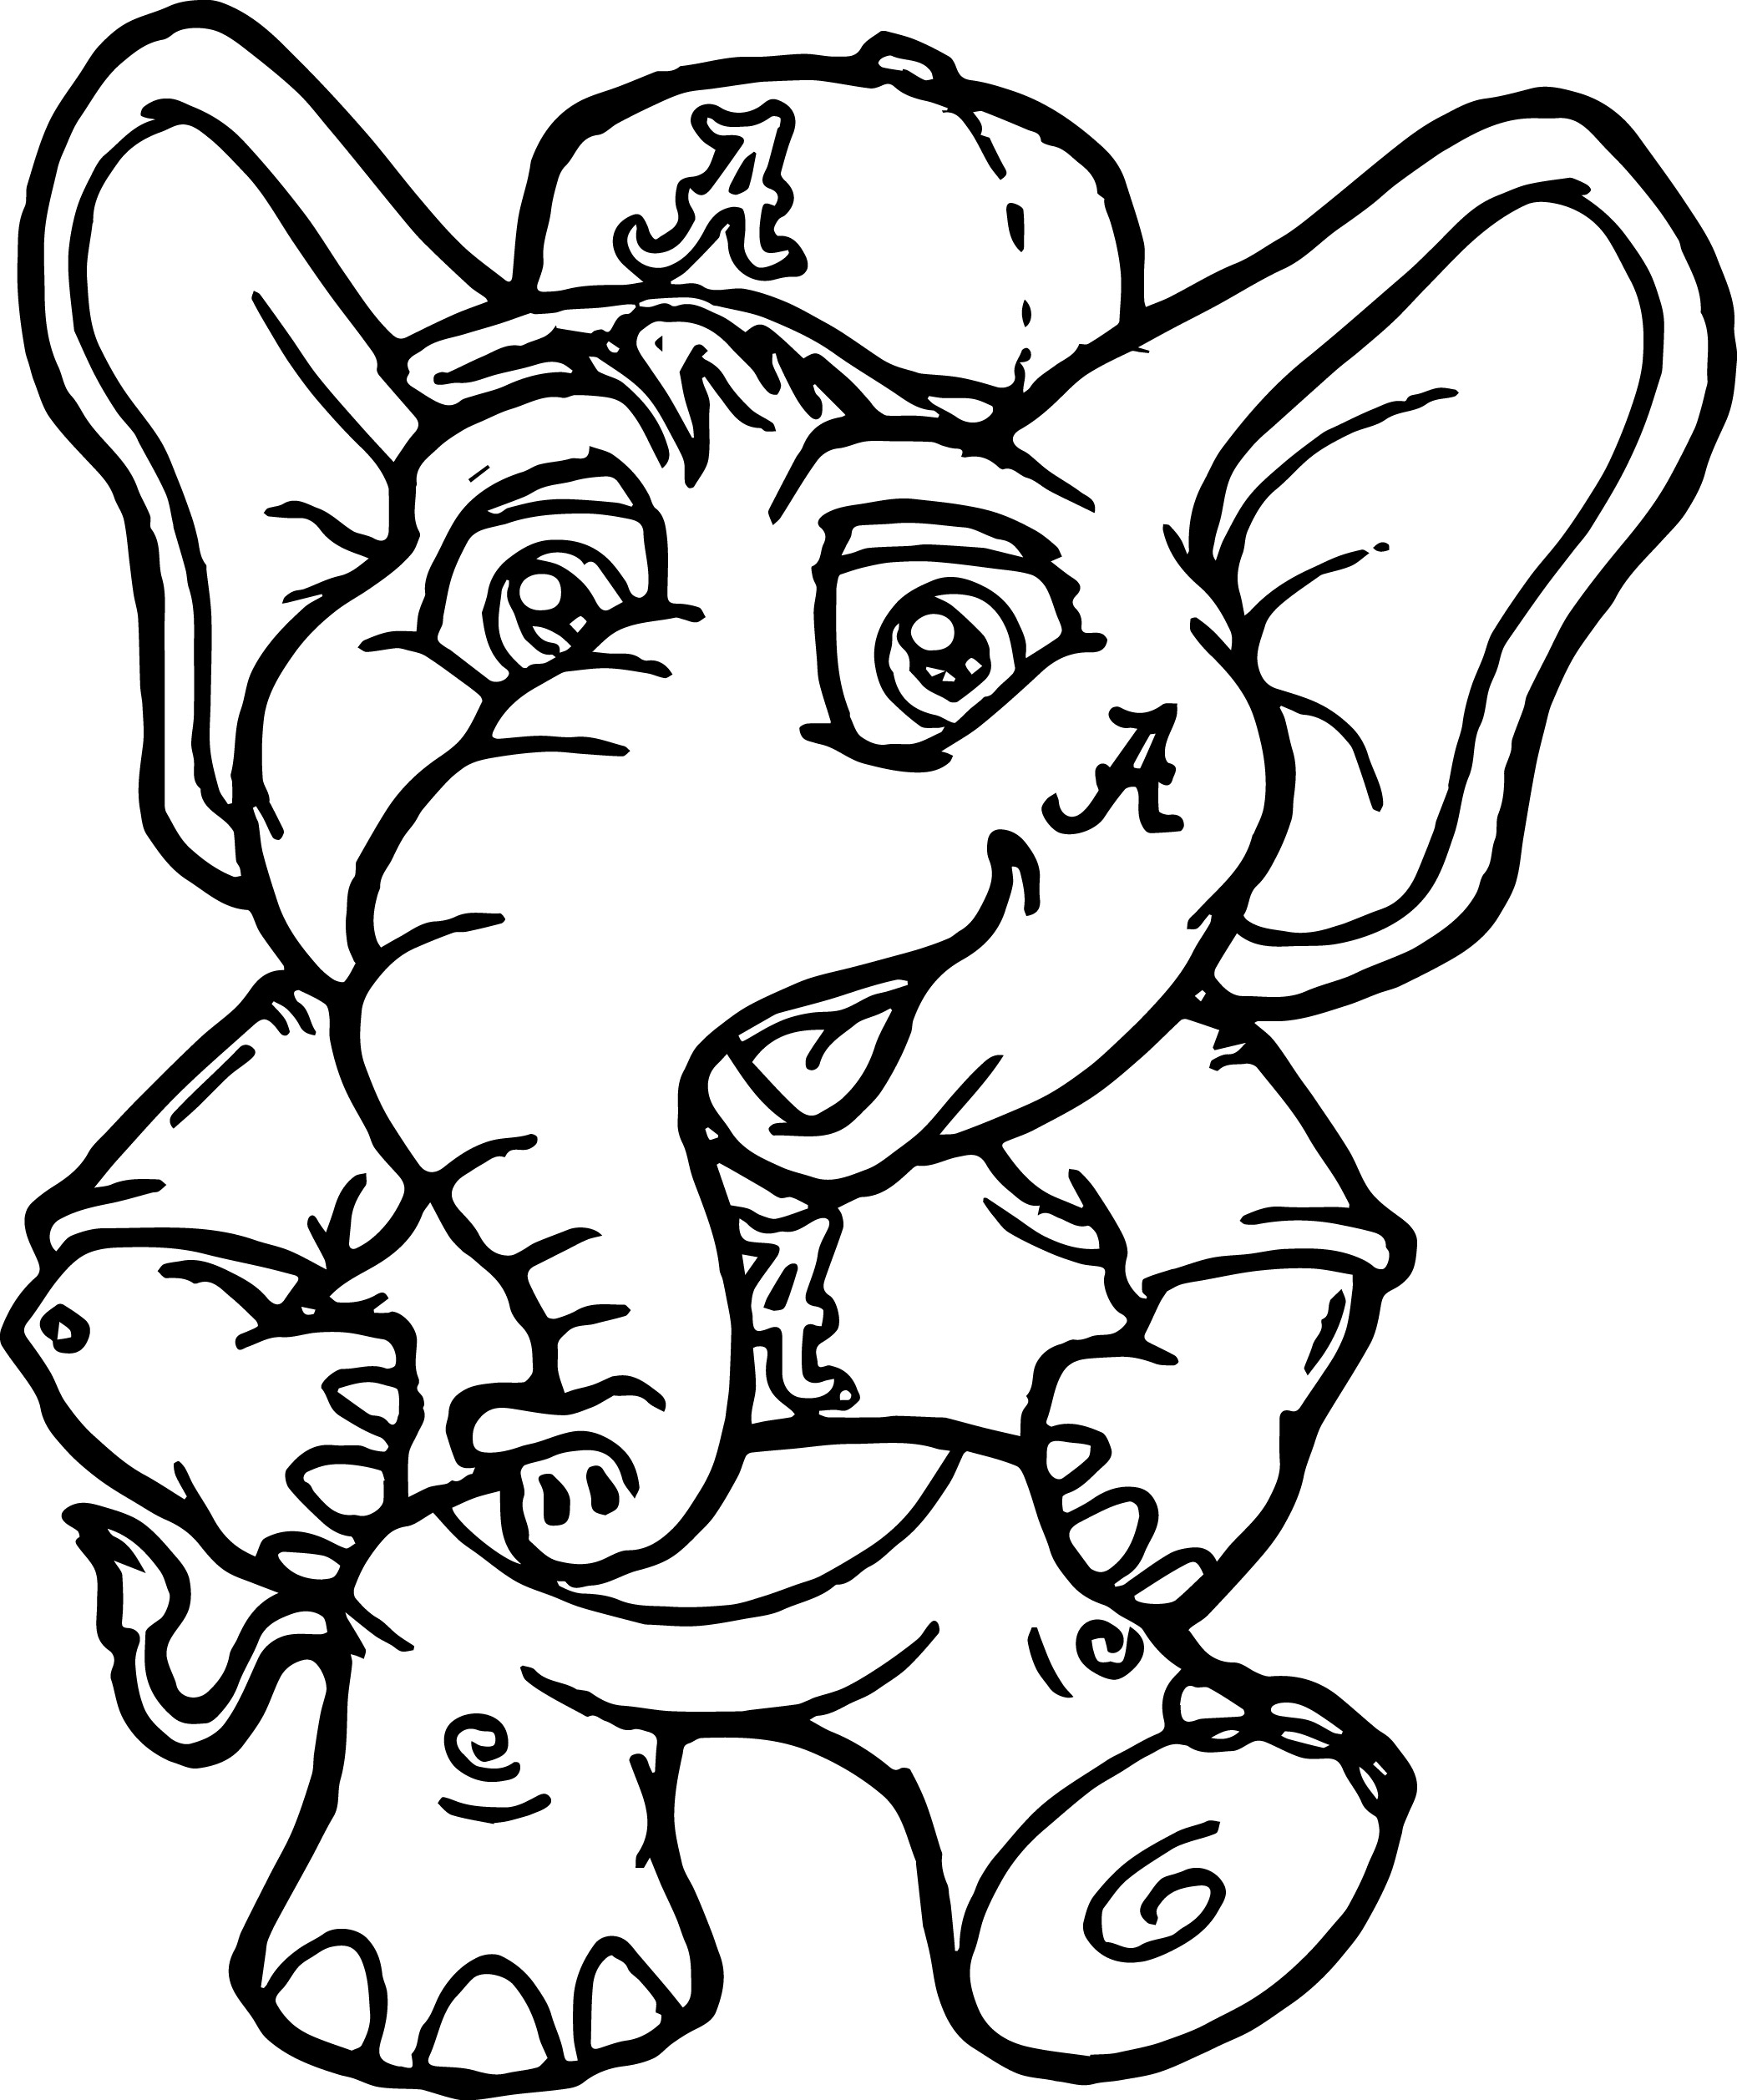 Alabama Football Coloring Pages | Wecoloringpage